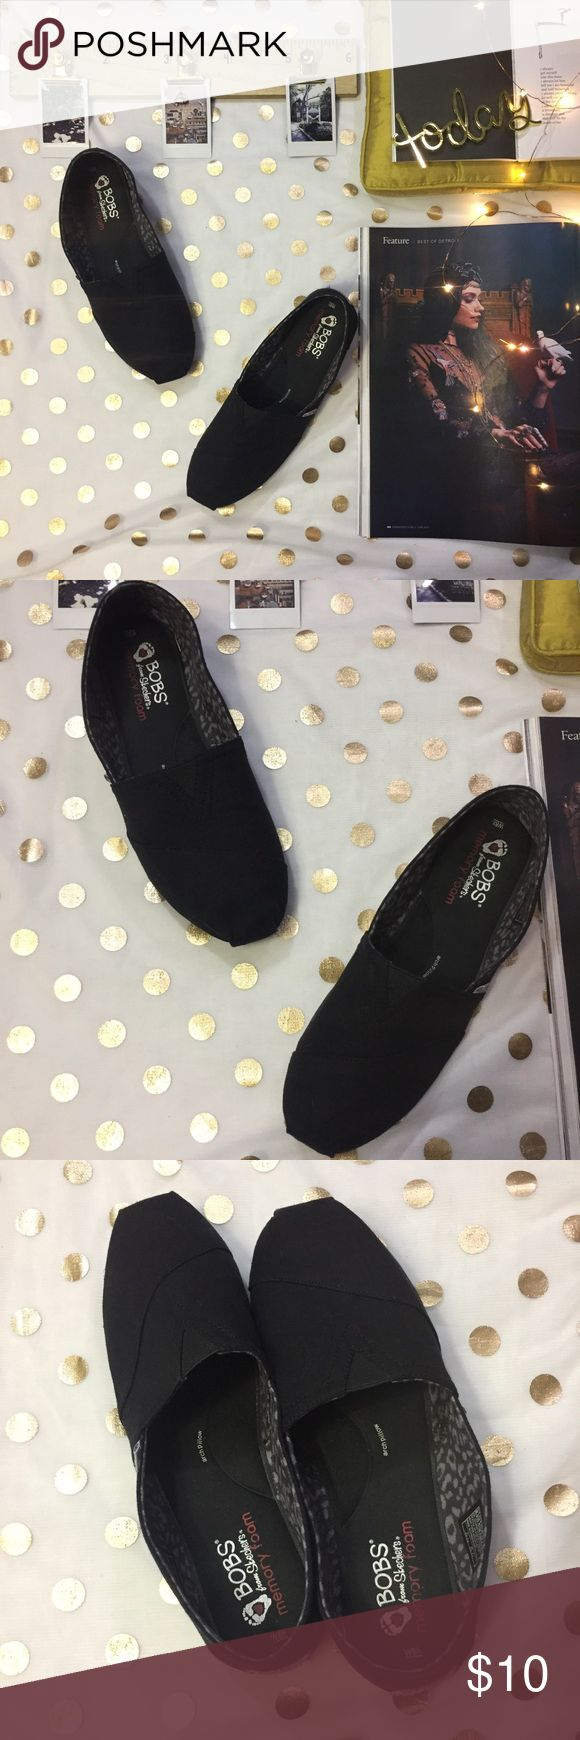 Bob's black memory cushion loafers size 8.5 In great condition  Bottom of one shoe little messed up but not does affect walking  Only wore once  Super comfy great for hairdressing / work long hours ✨✨ Skechers Shoes Flats & Loafers